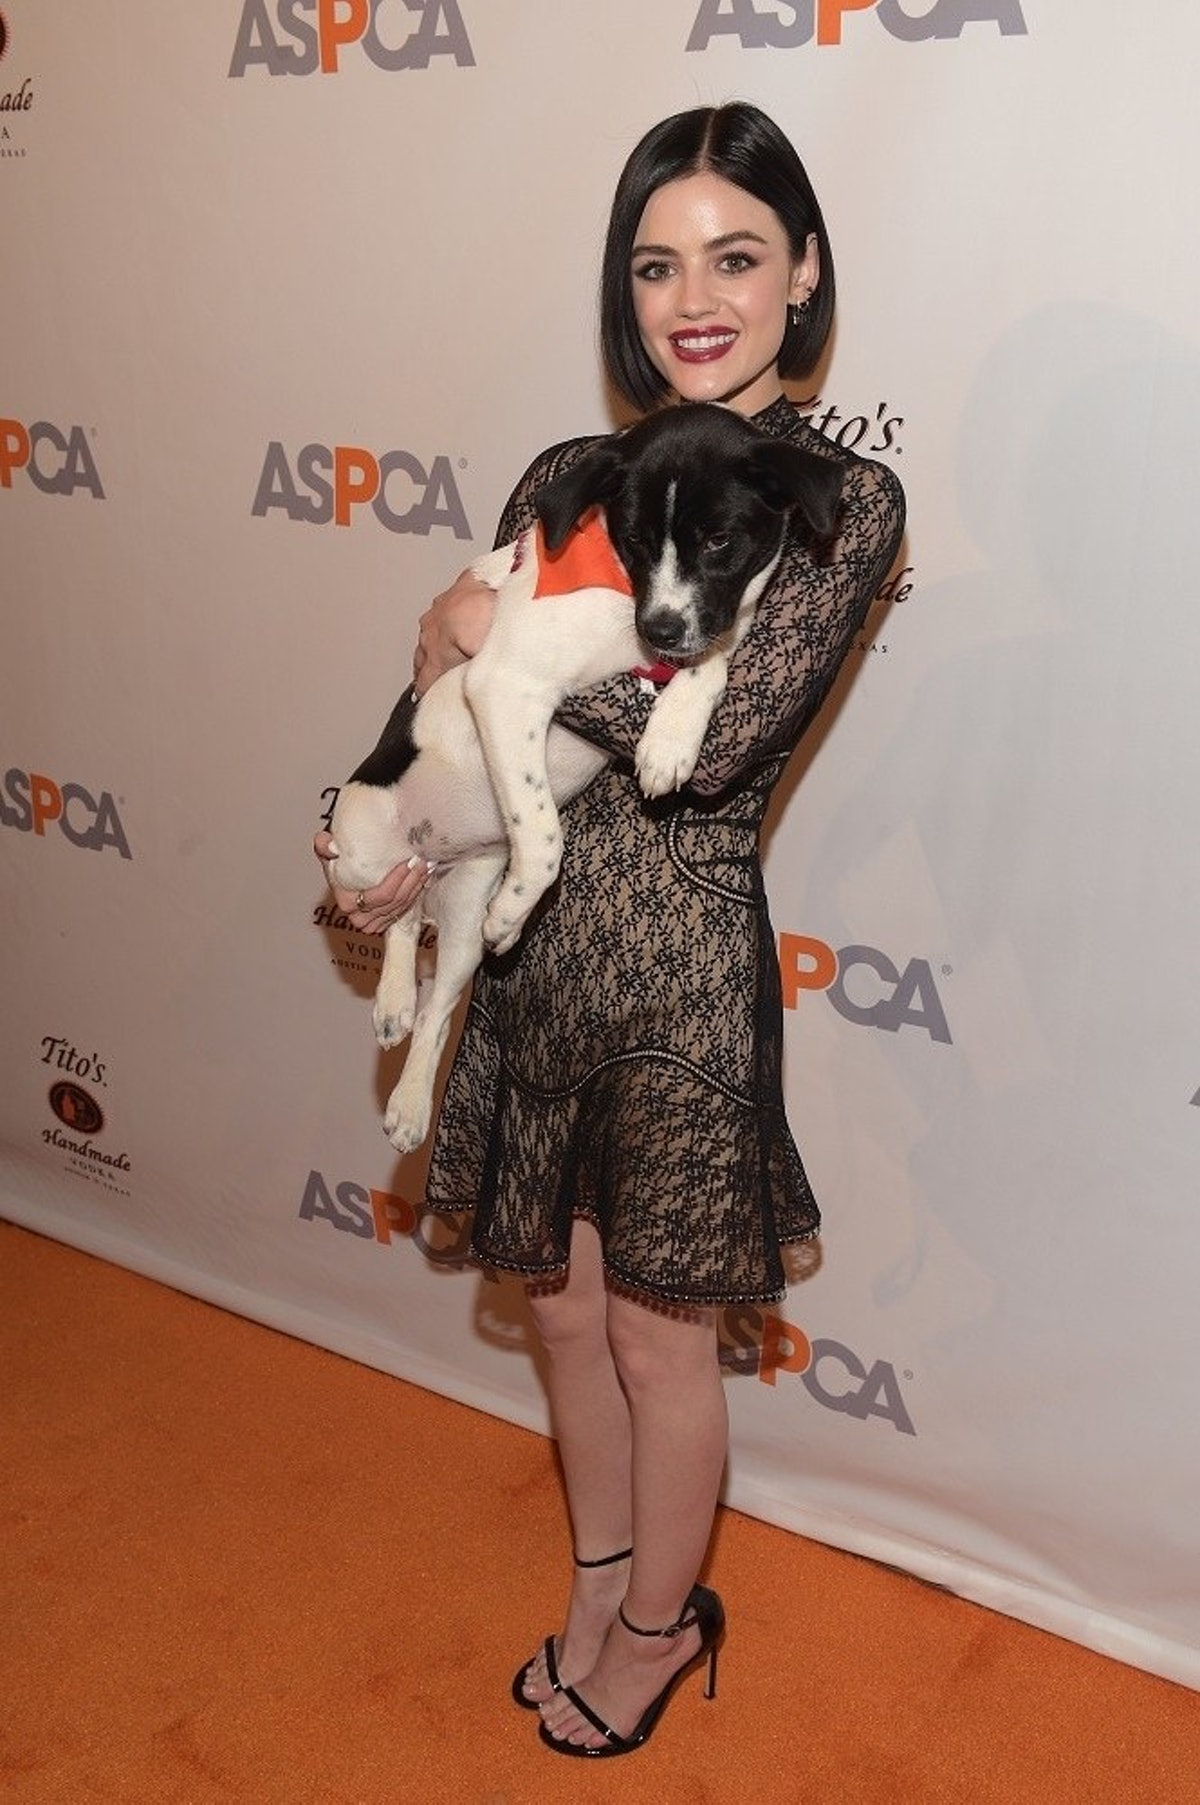 ASPCA After Dark Cocktail Party Hosted By Lucy Hale